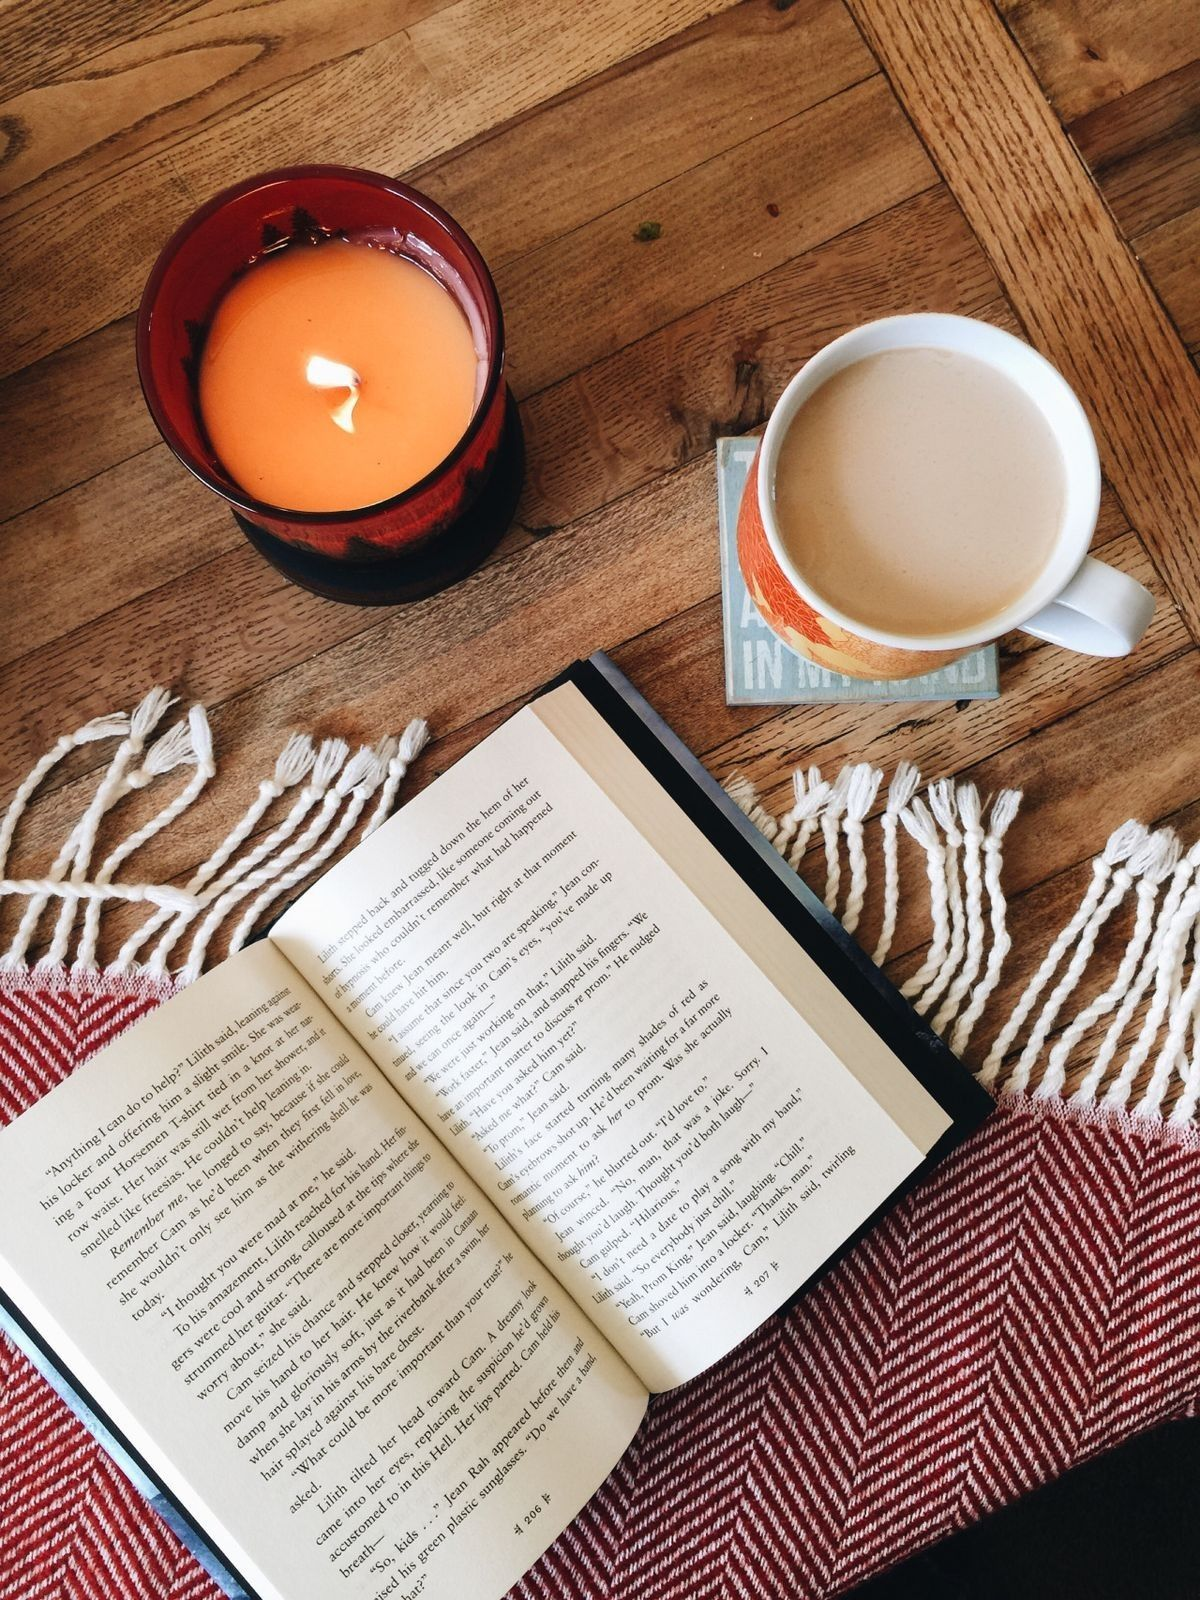 Pin by Sarah McMullen on Книга Coffee and books, Tea and